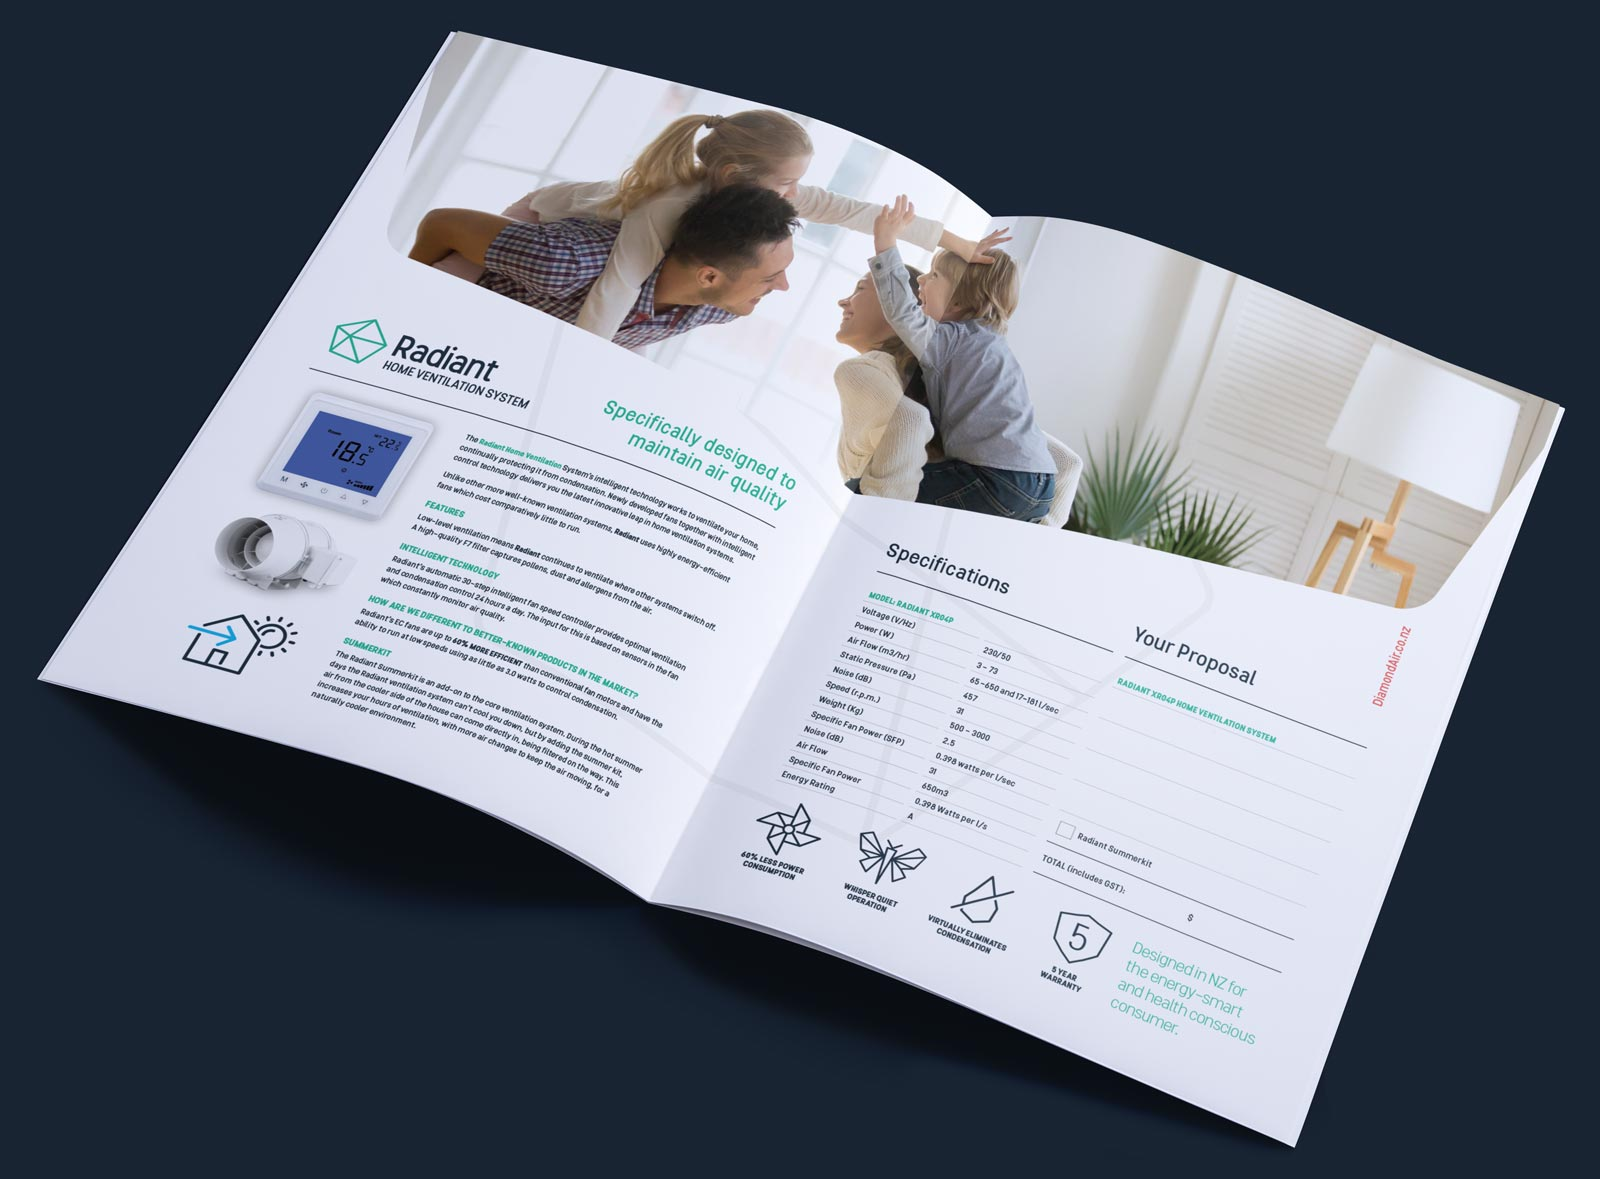 diamond-air-radiant-a4-brochure-design